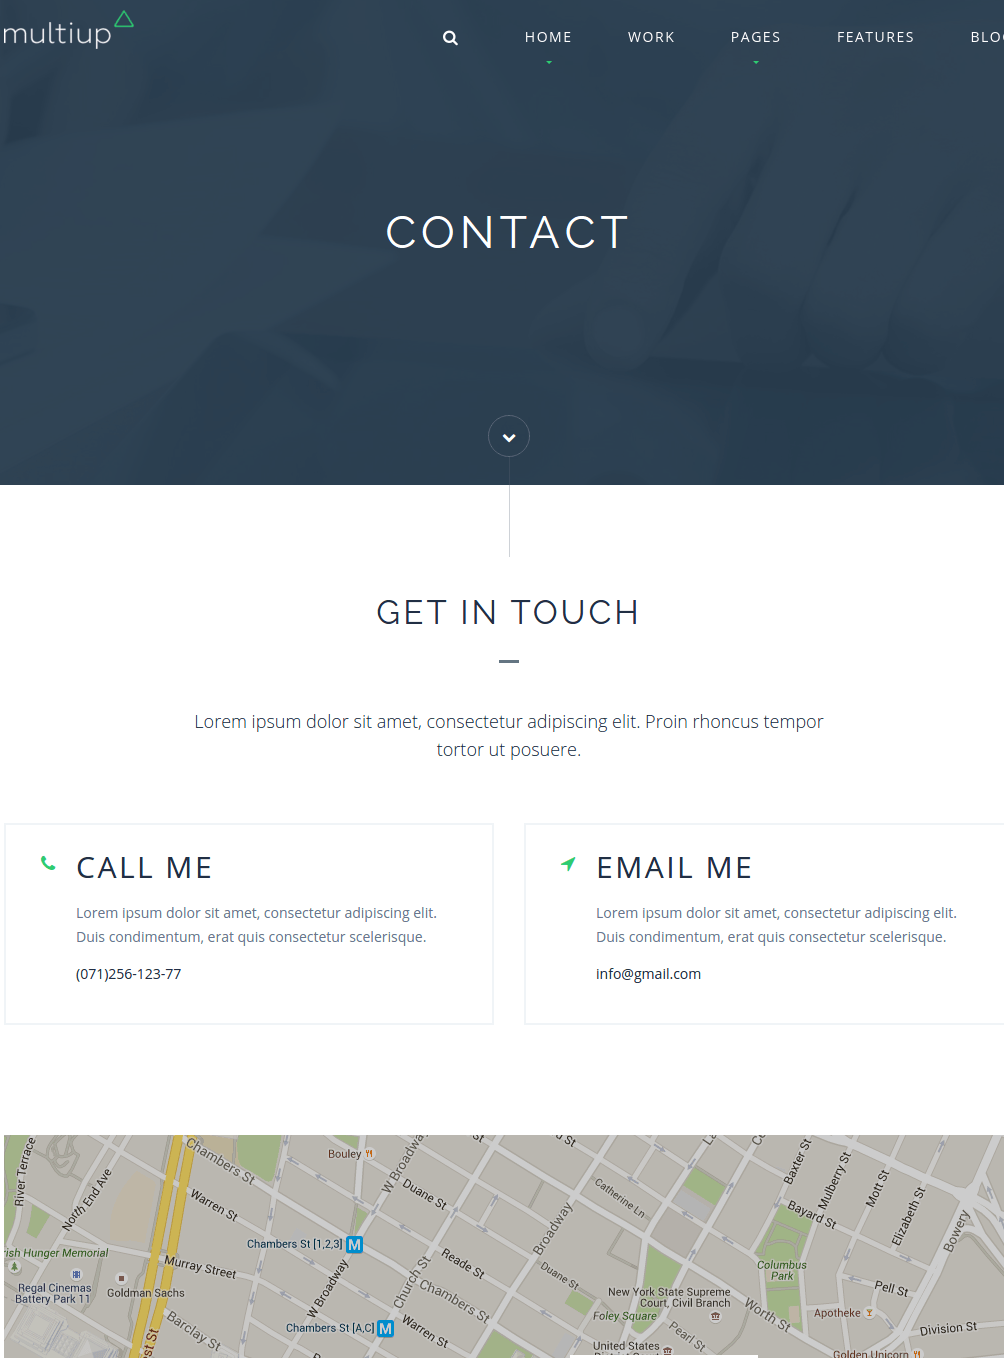 Contact page of Multiup